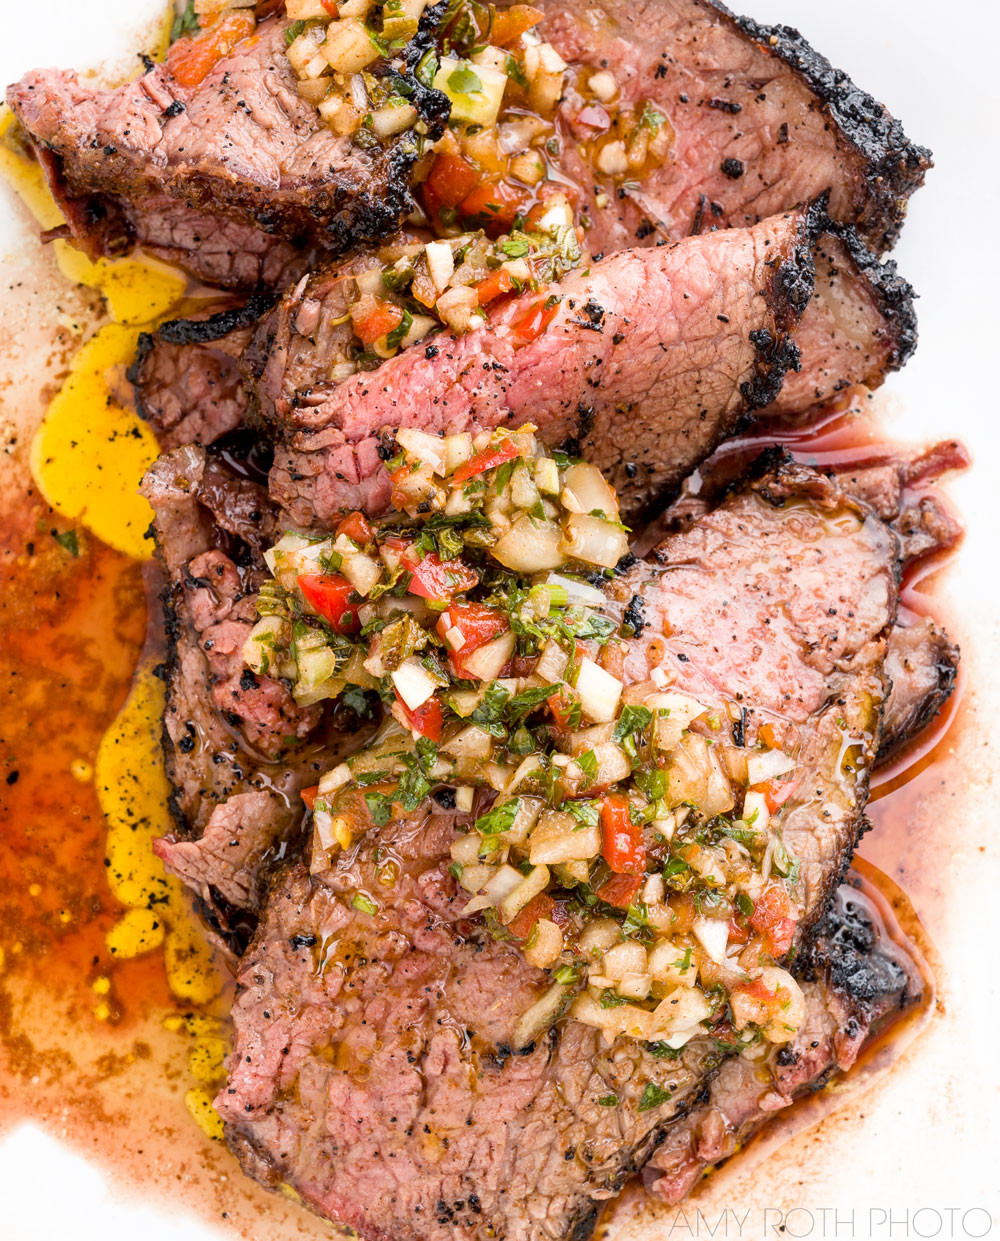 Grilled Tri Tip | Amy Roth Photo